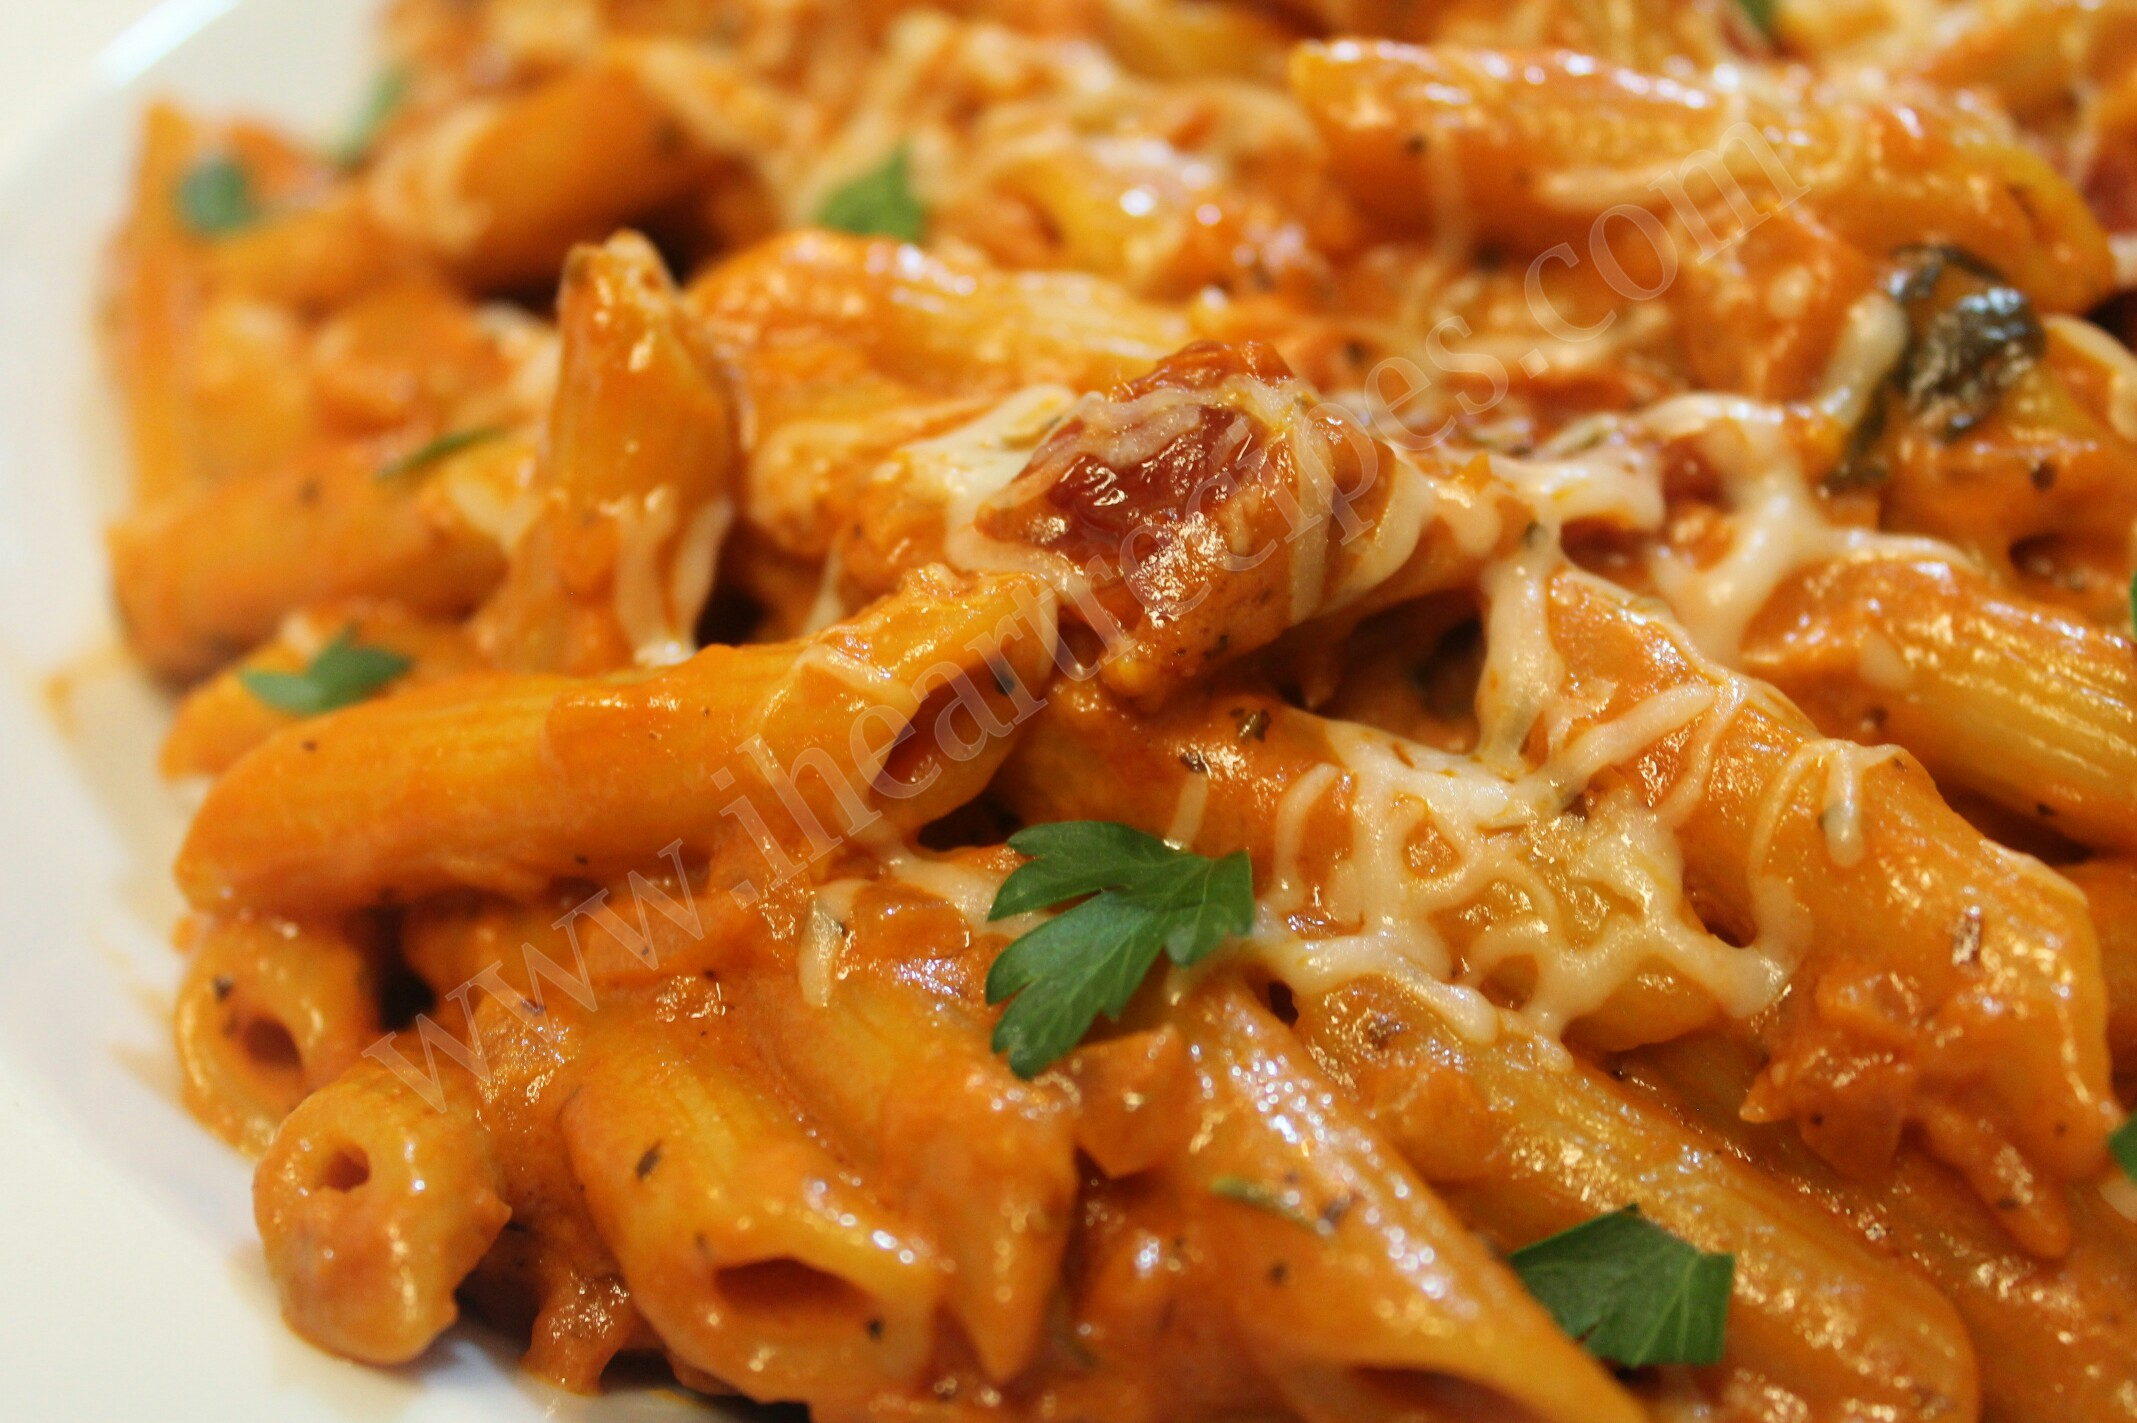 Penne with Homemade Vodka Sauce | I Heart Recipes